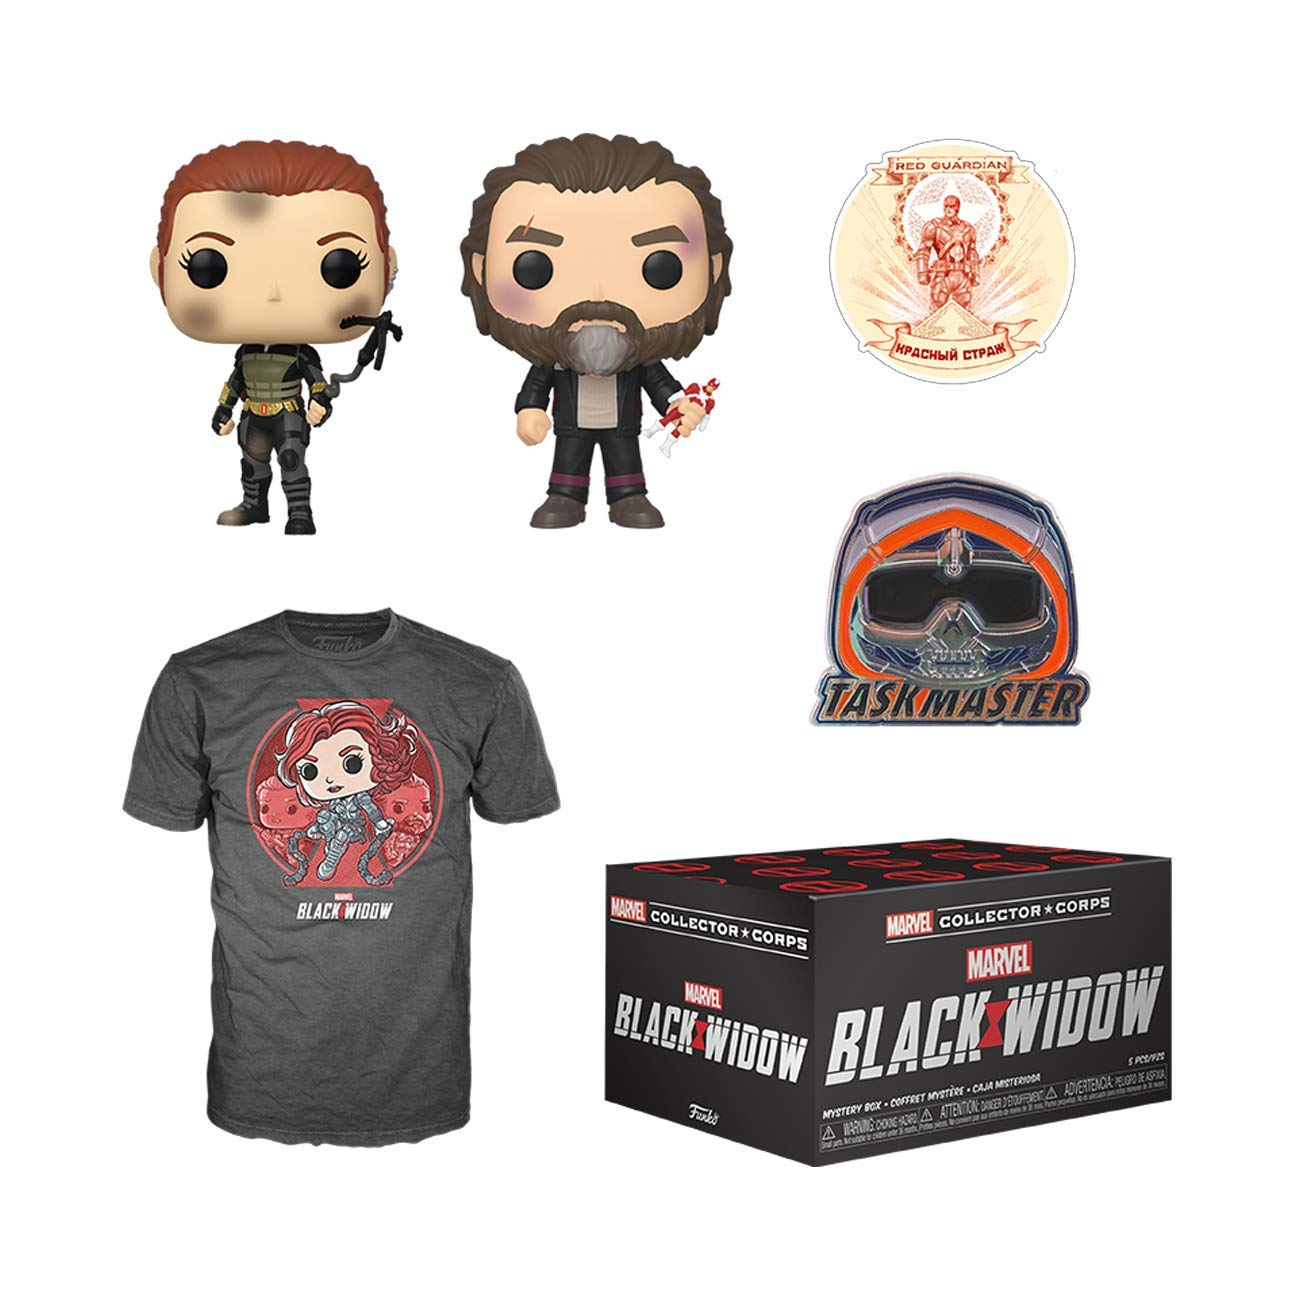 Funko Marvel Collector Corps Subscription Box, Black Widow Theme, May 2020, Small T-Shirt